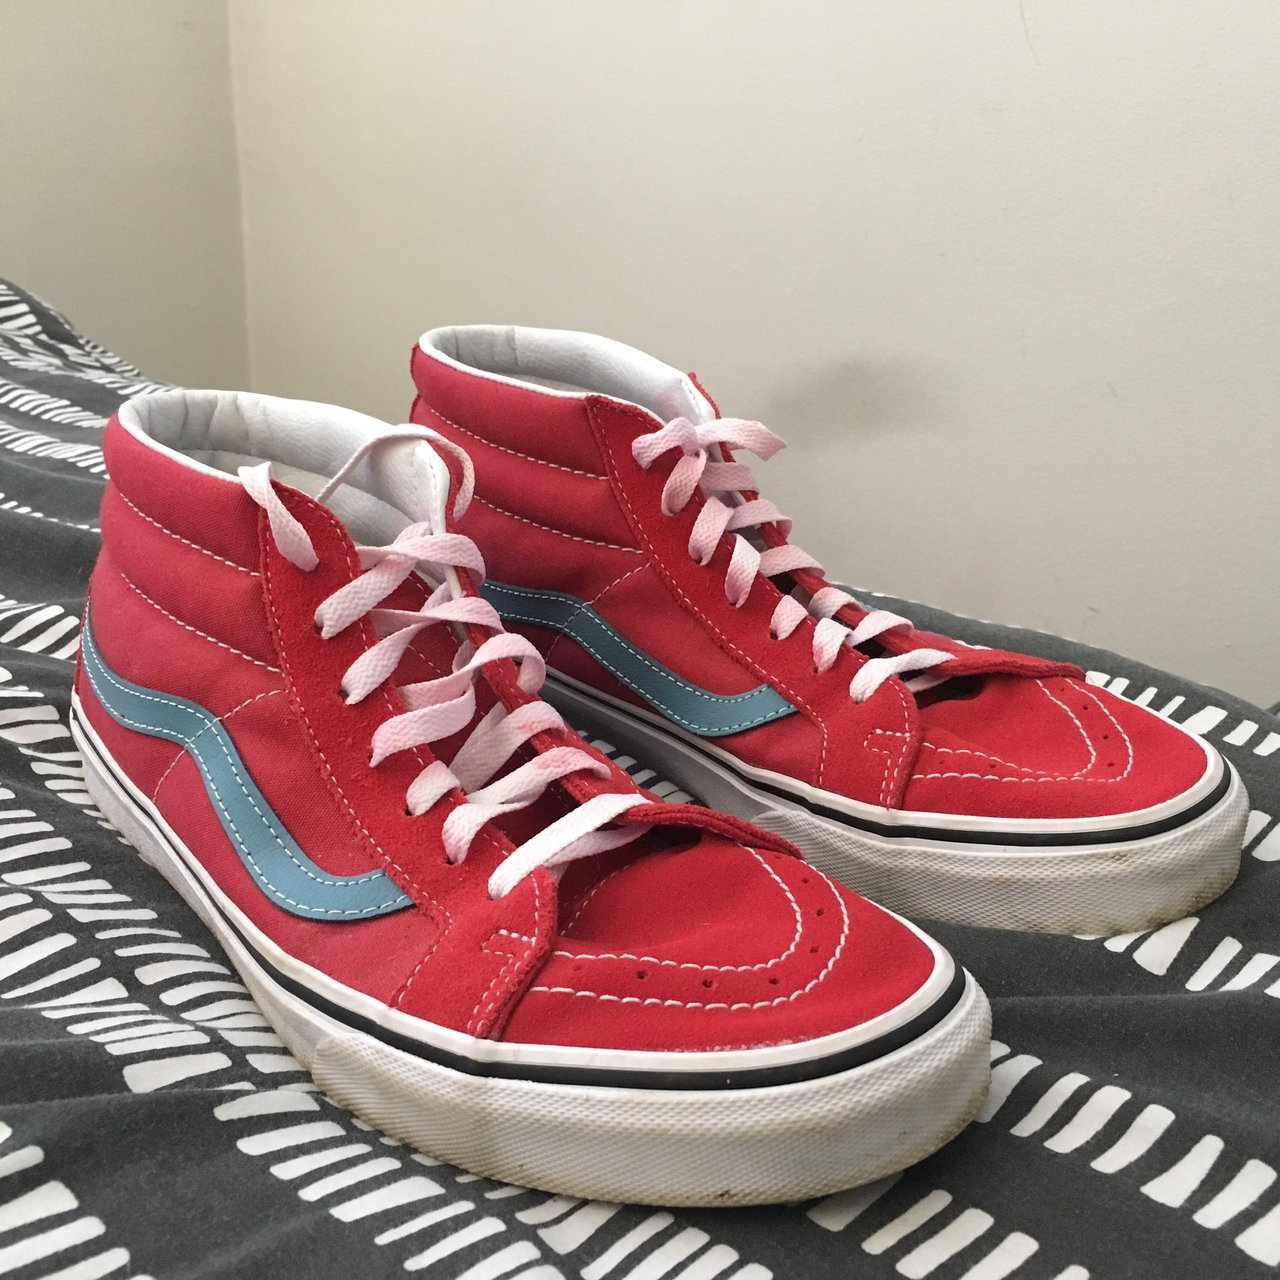 Vans sk8 mid size 9 Some red staining on the laces due to - Depop 6edb849b7d90